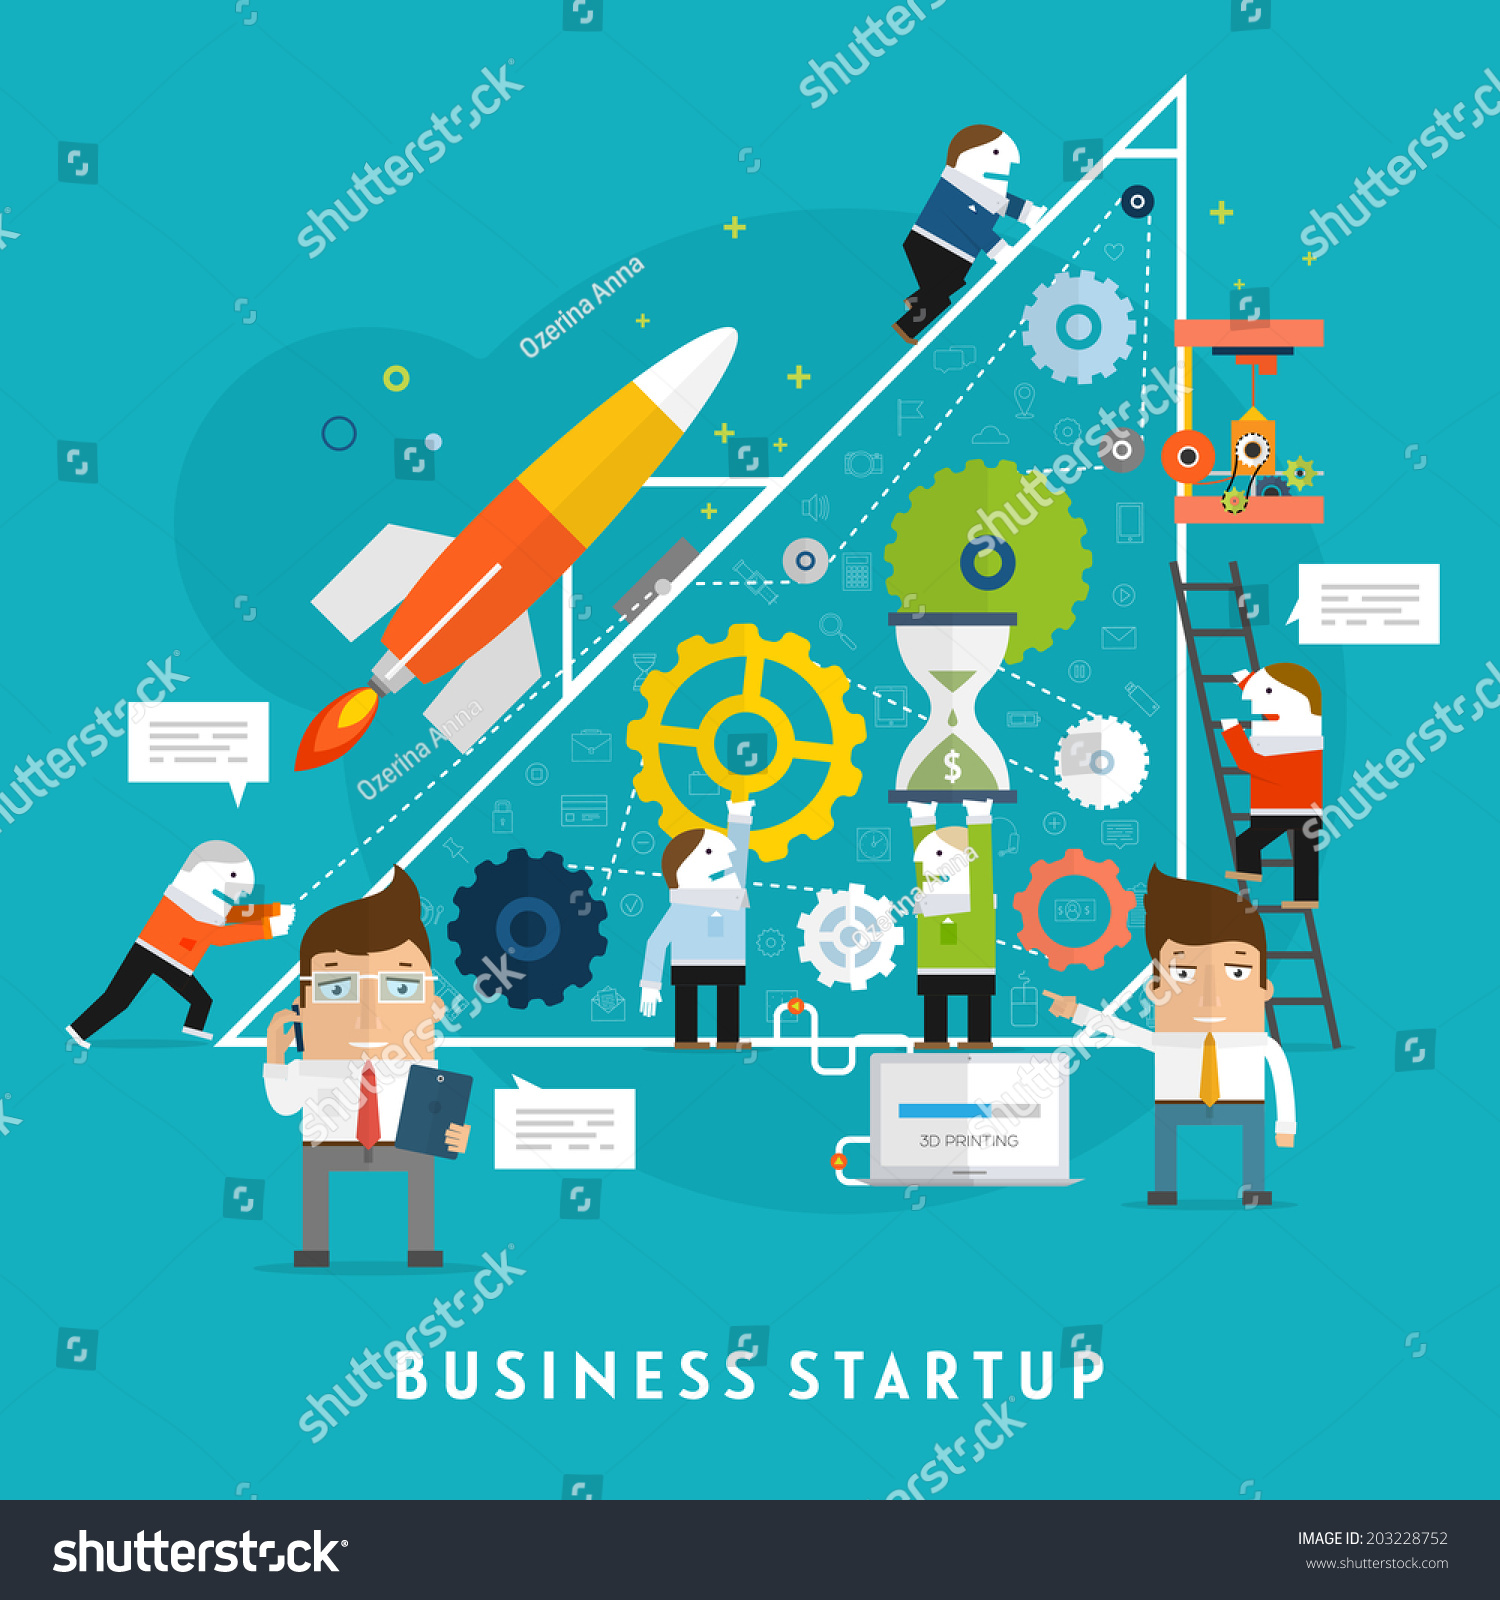 Business Startup Vector Illustration  Flat Style Design  Mobile  Technologies  Time and Money Management. Business Startup Vector Illustration Flat Style Stock Vector